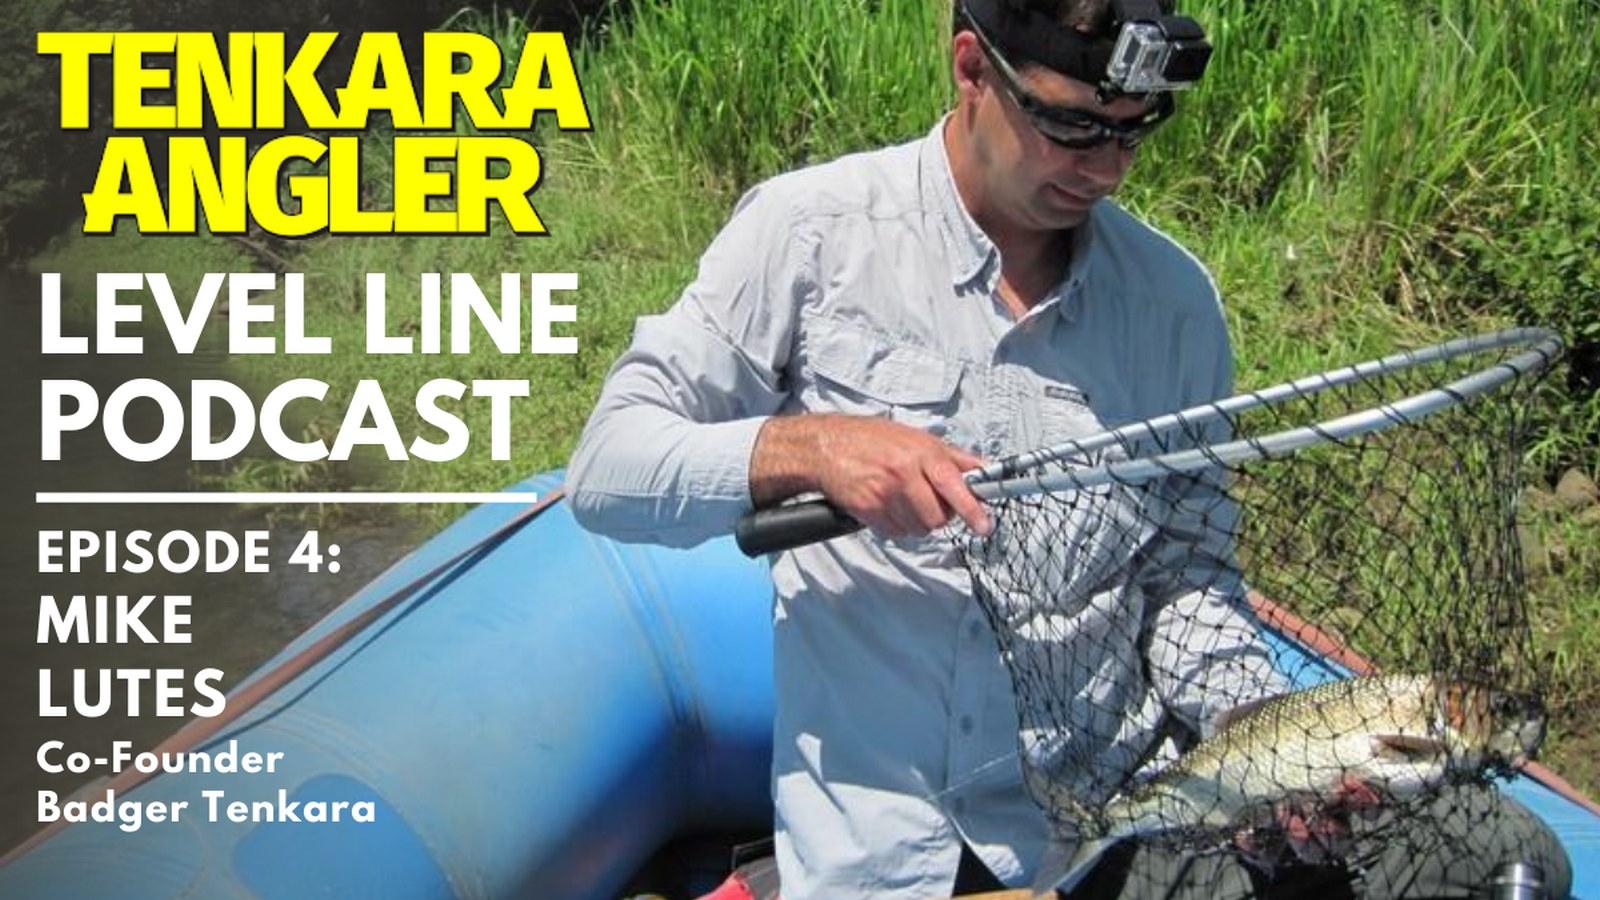 Tenkara Angler Level Line Podcast Episode 4 - Mike Lutes Tenkara Podcast